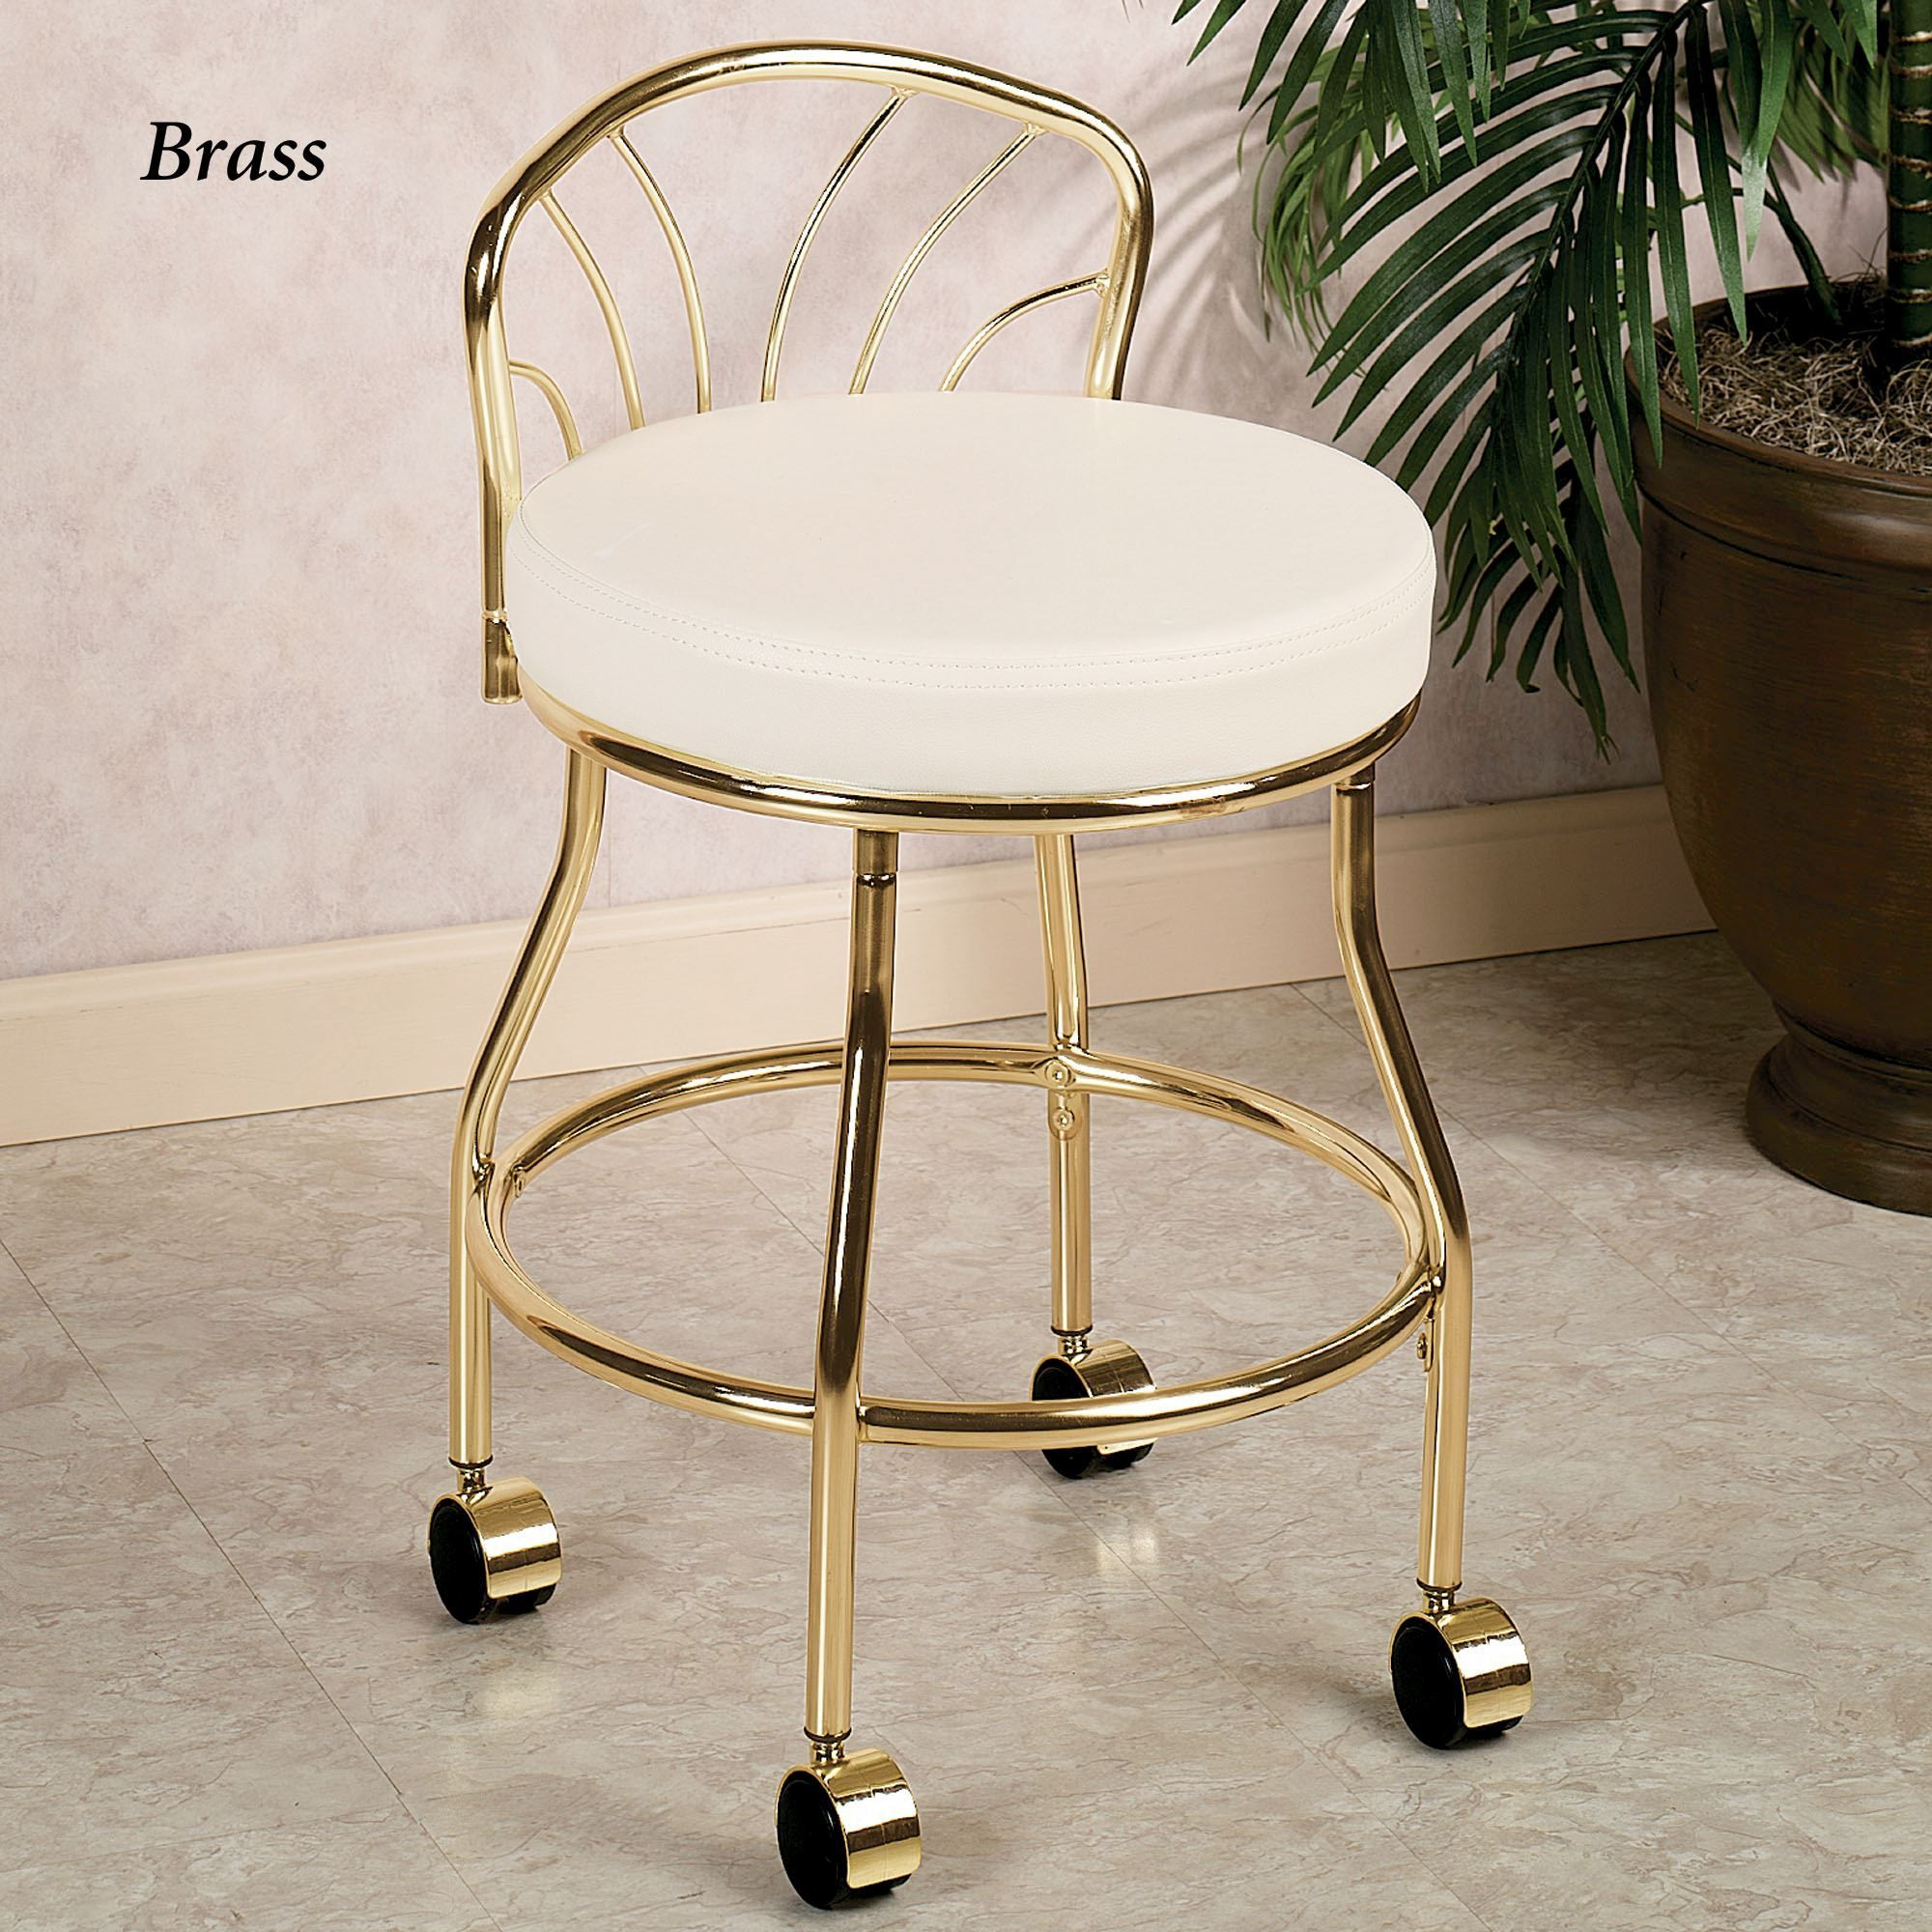 Flare back metallic finish vanity chair with casters with